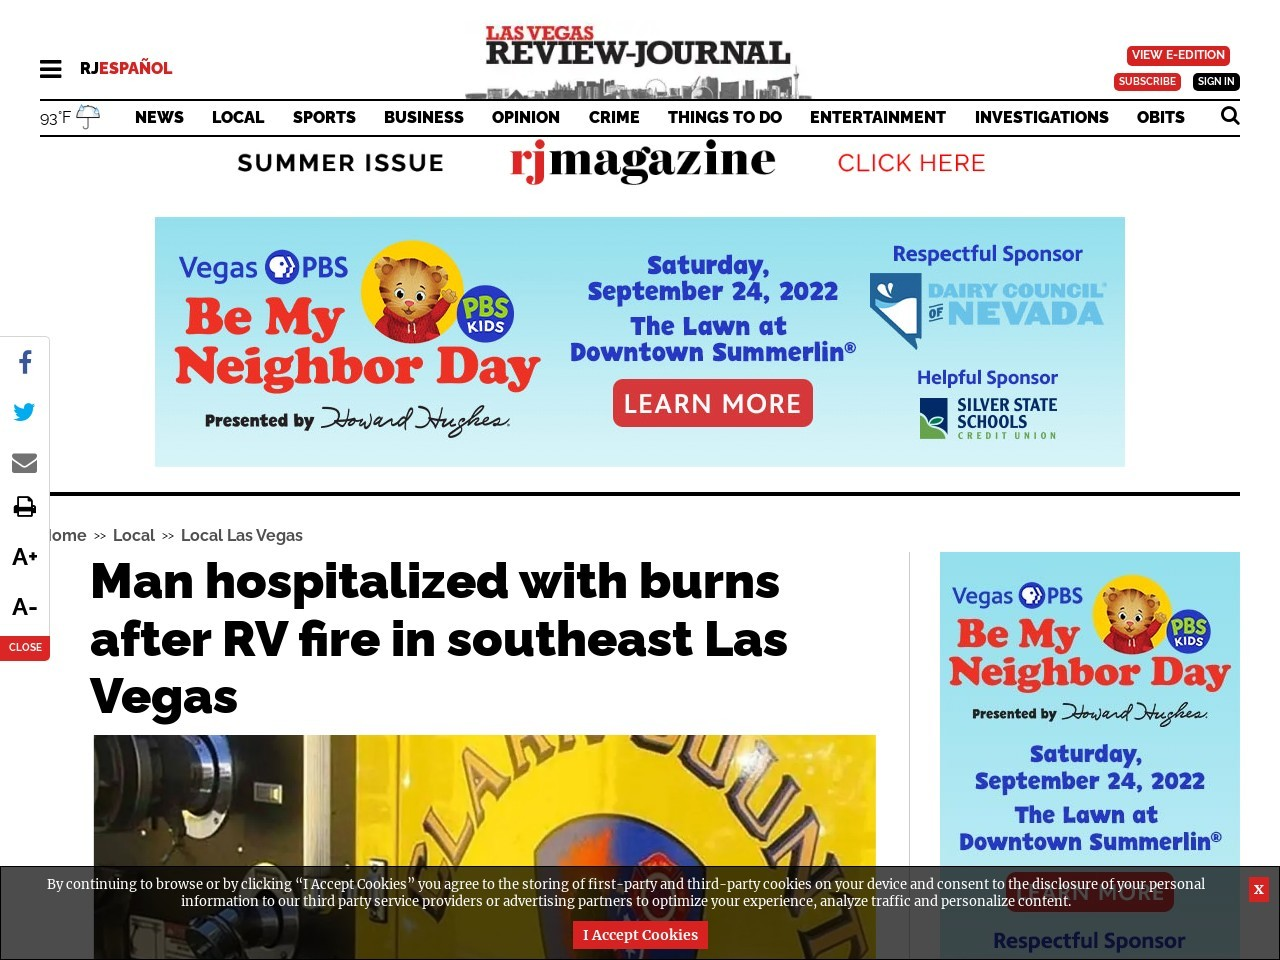 Man hospitalized with burns after RV fire in southeast Las Vegas